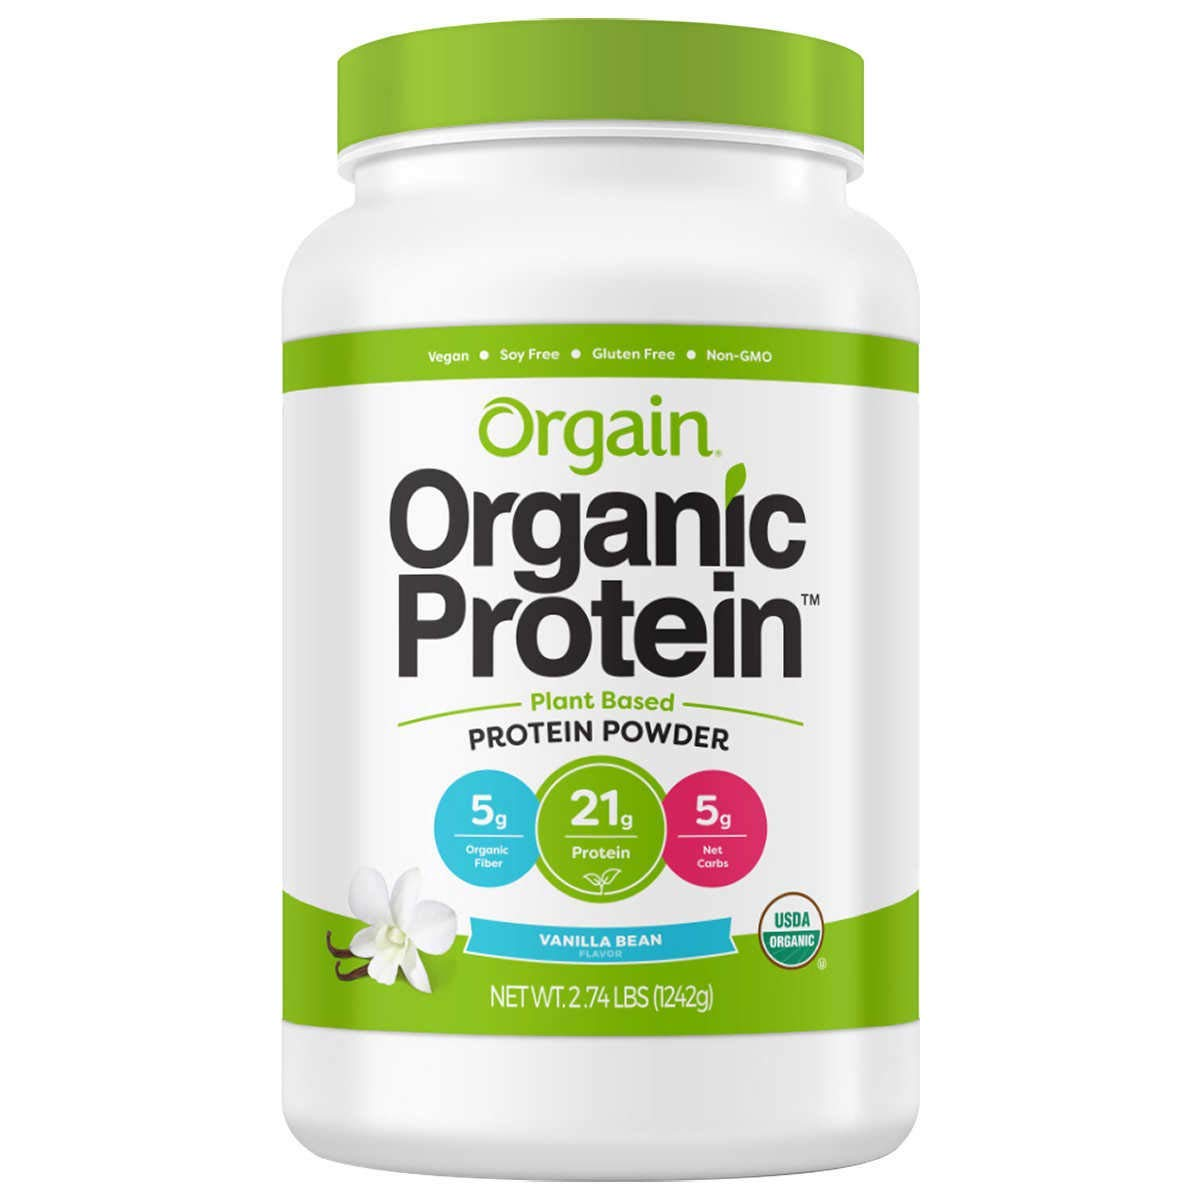 Orgain Organic Plant Based Protein Powder, Vegan, Gluten Free, Kosher, Non-GMO, Packaging May Vary (2.74 lb, Vanilla Bean)